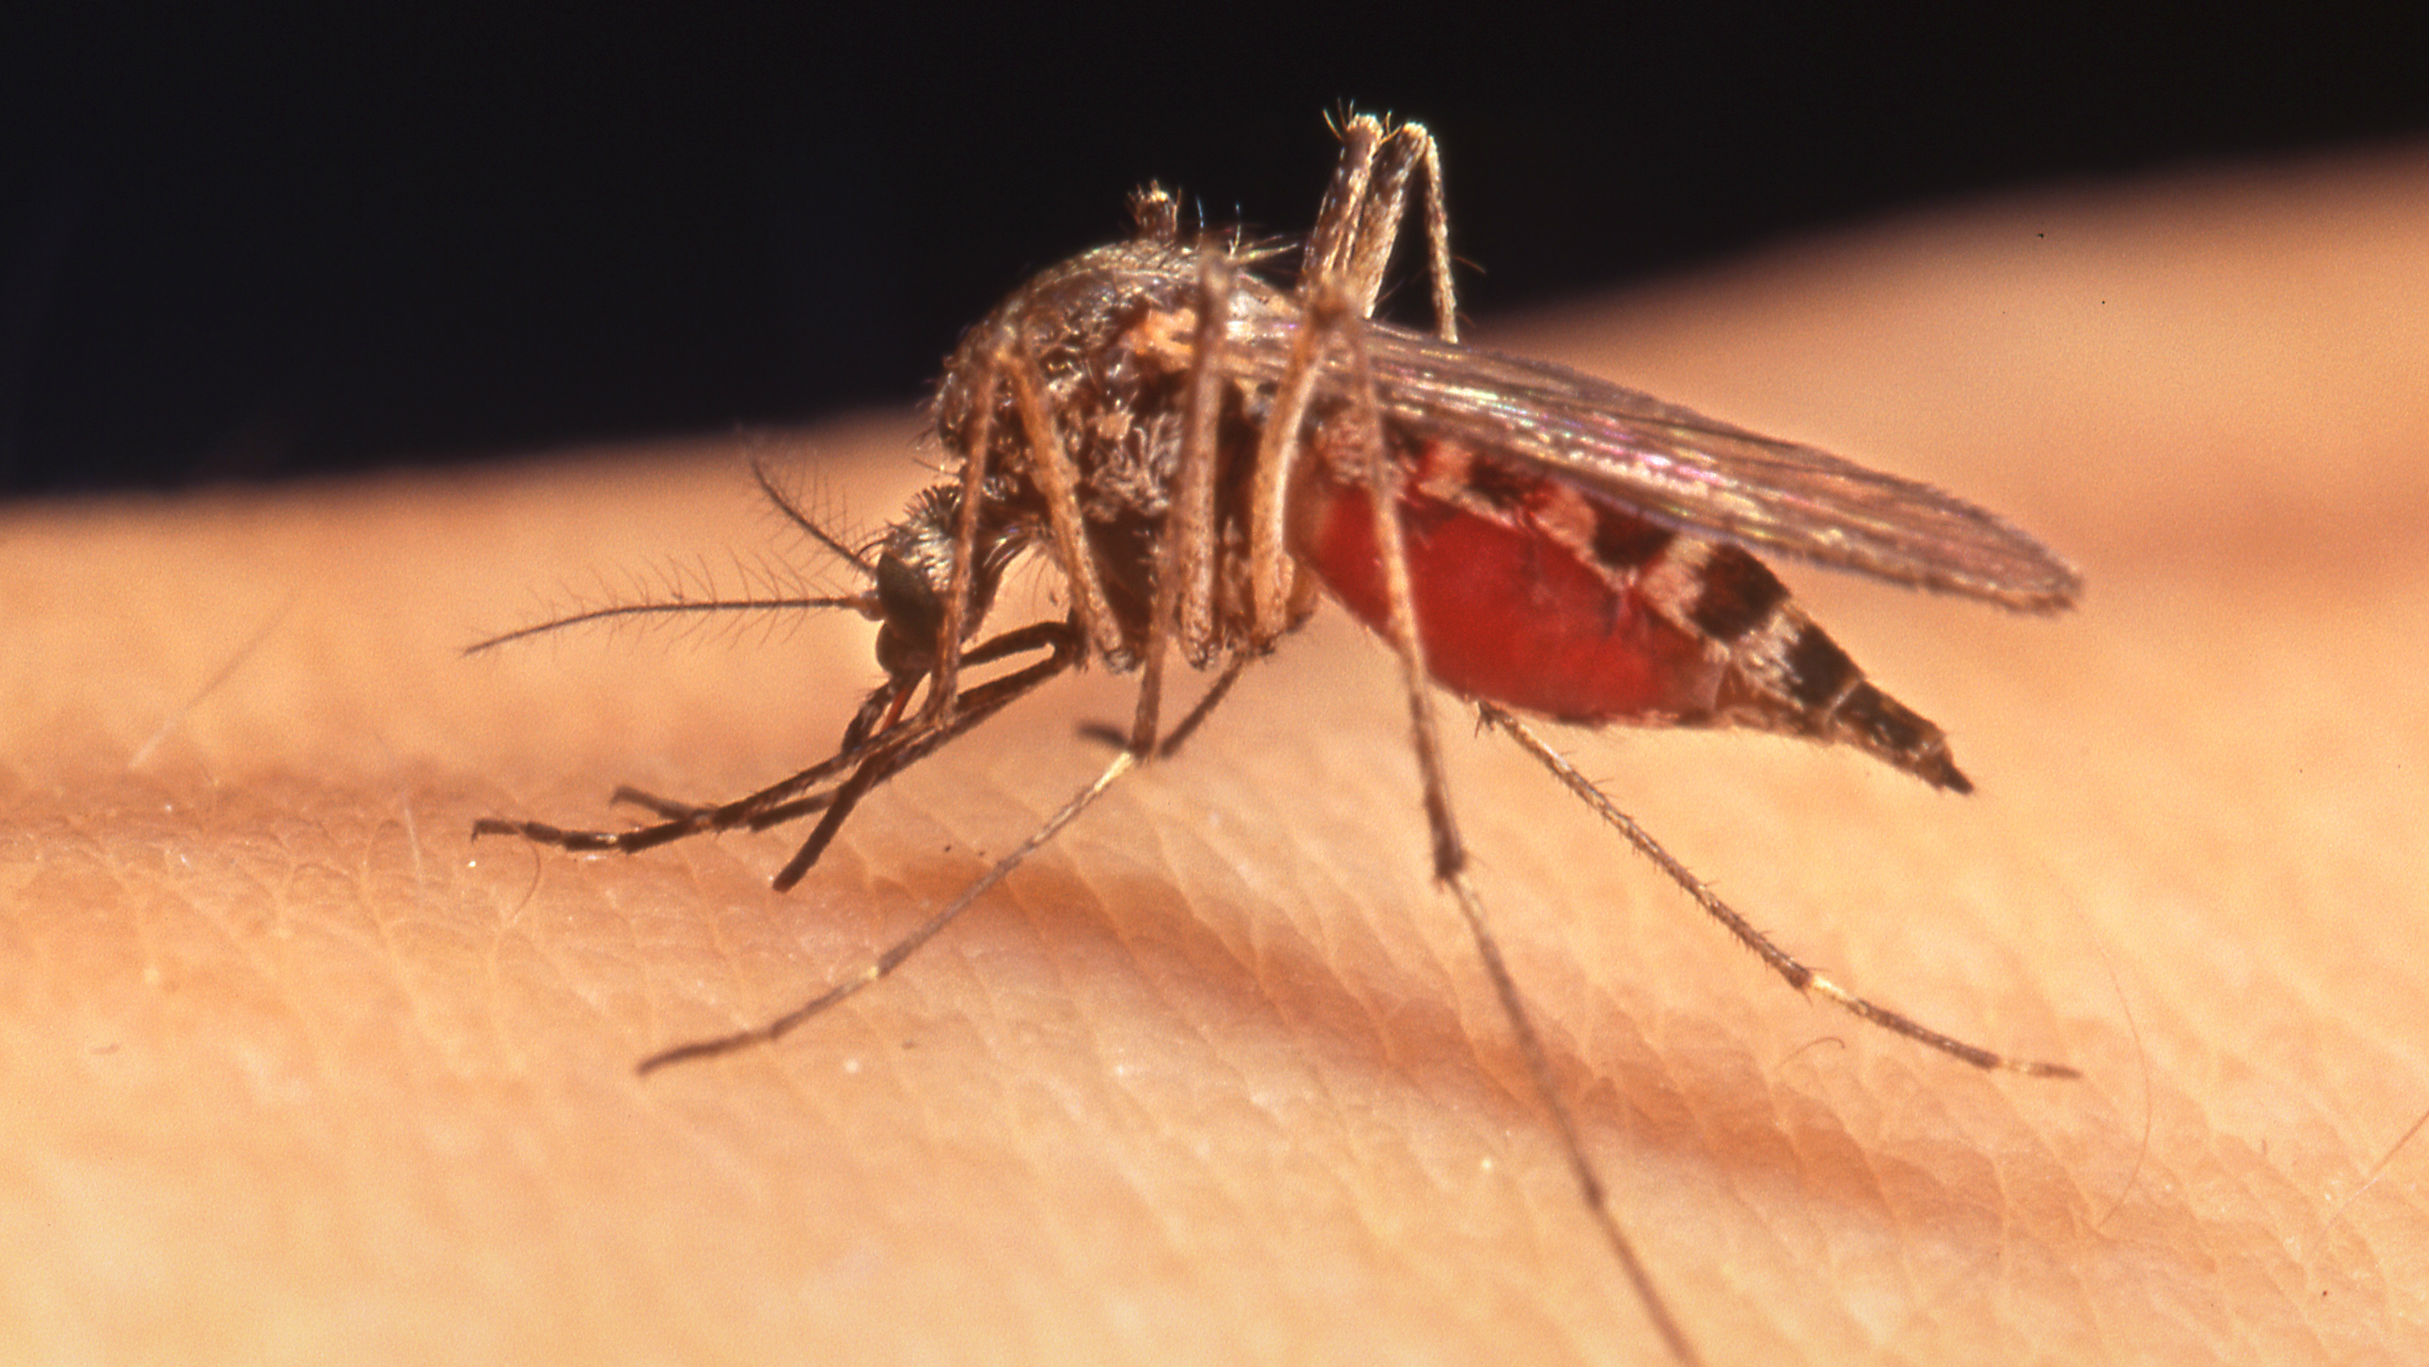 (10:10 AM) County Confirms Detection Of West Nile Virus